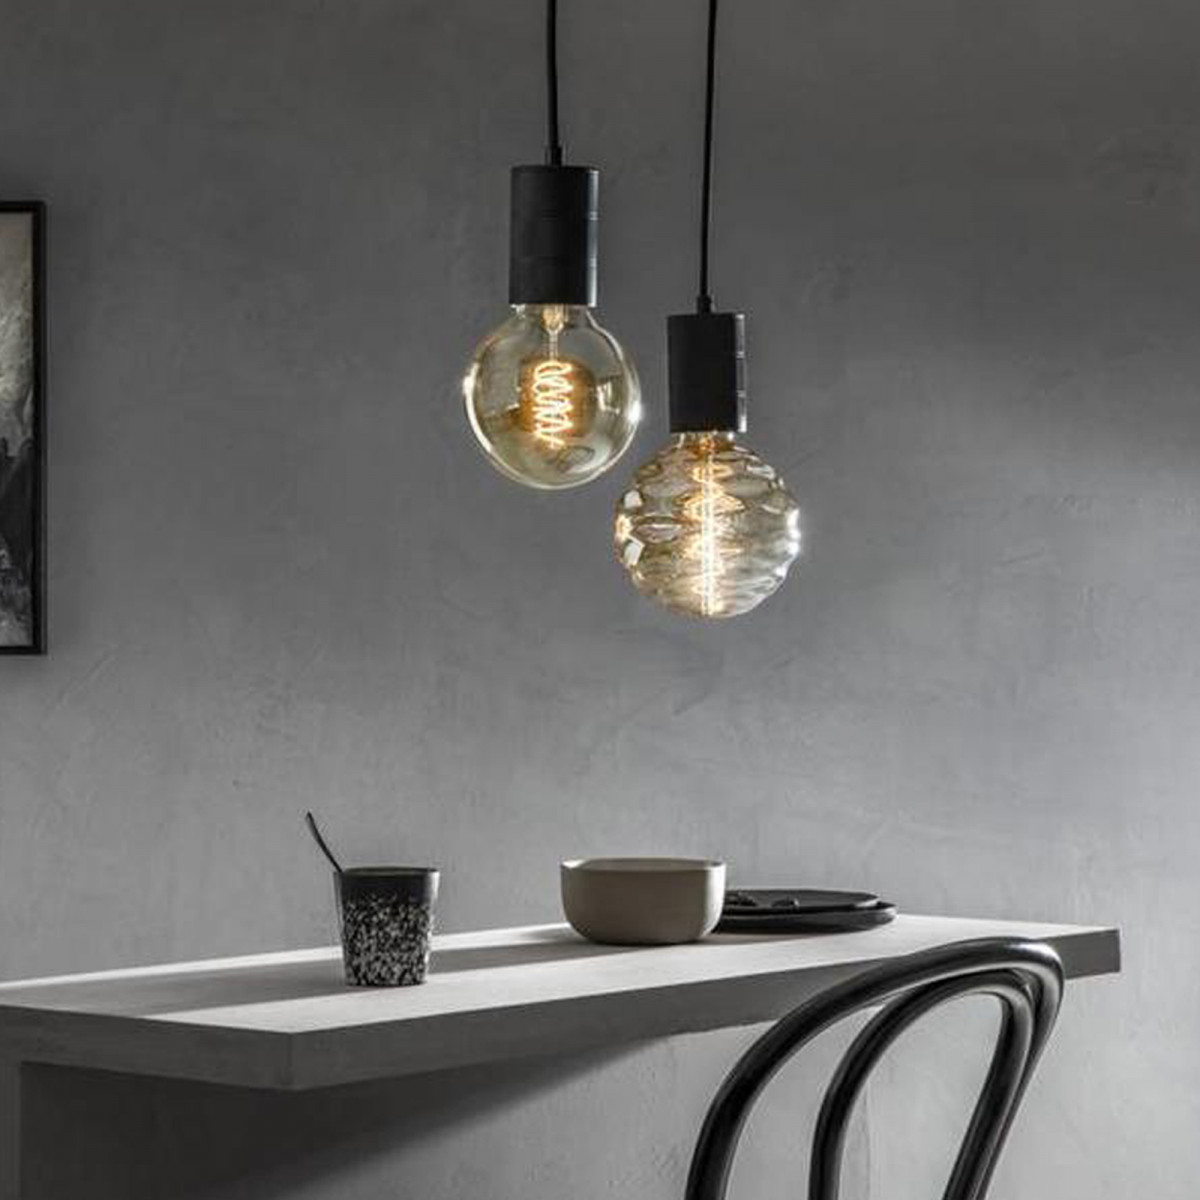 LED XXL lamp Bilbao